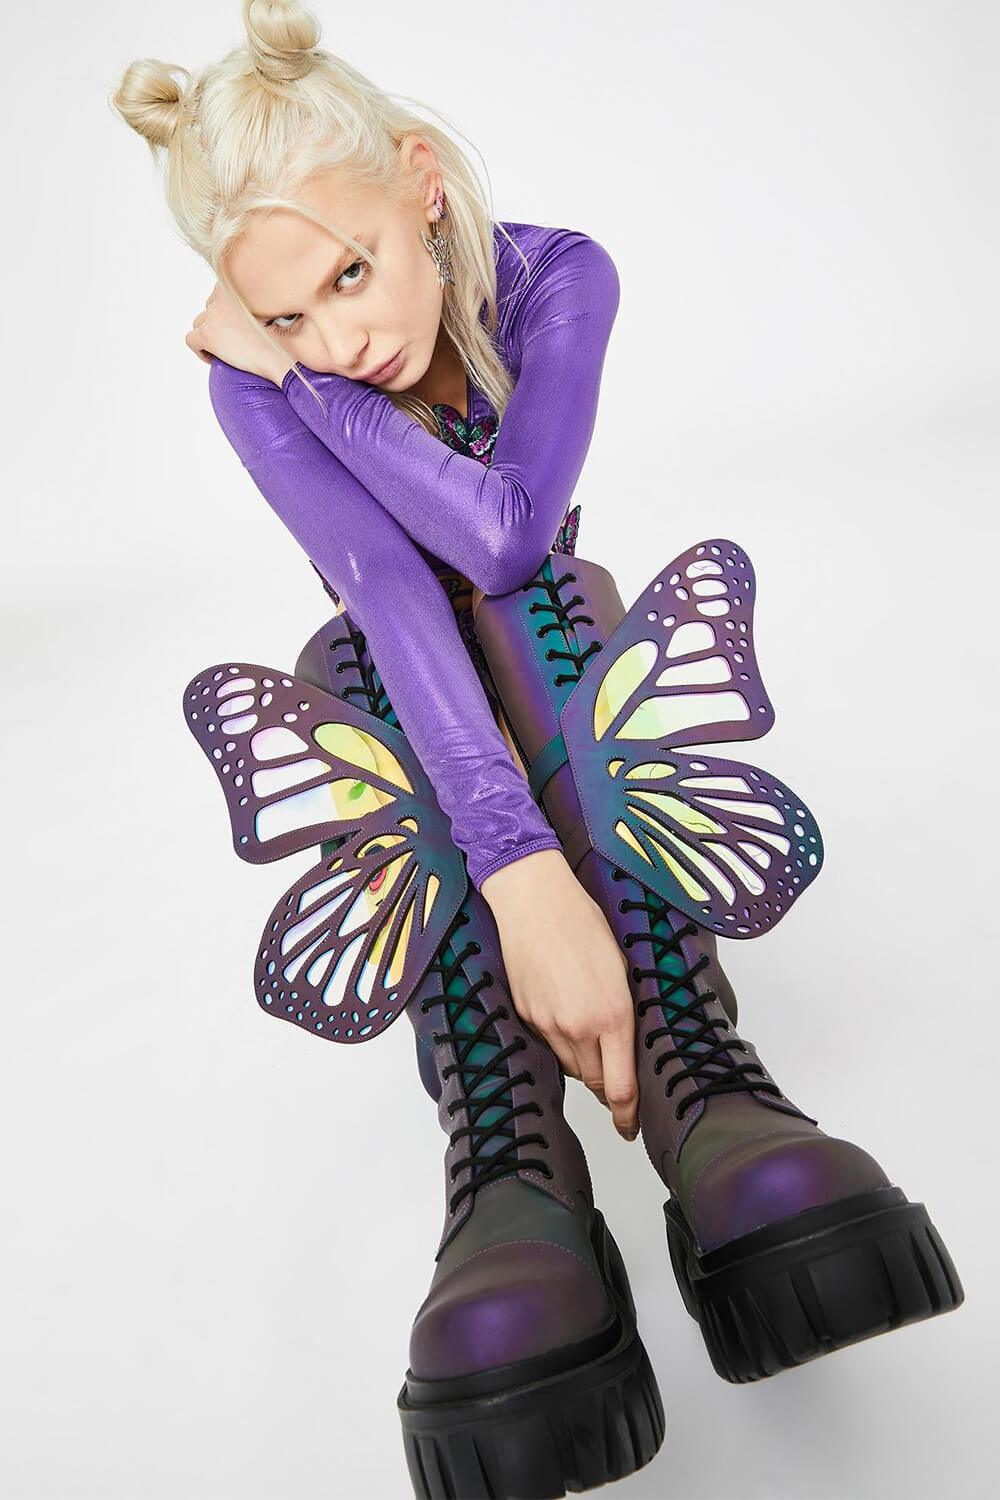 Holographic Rainbow Reflective Lace Up Knee High Combat Boots With Butterfly Wings